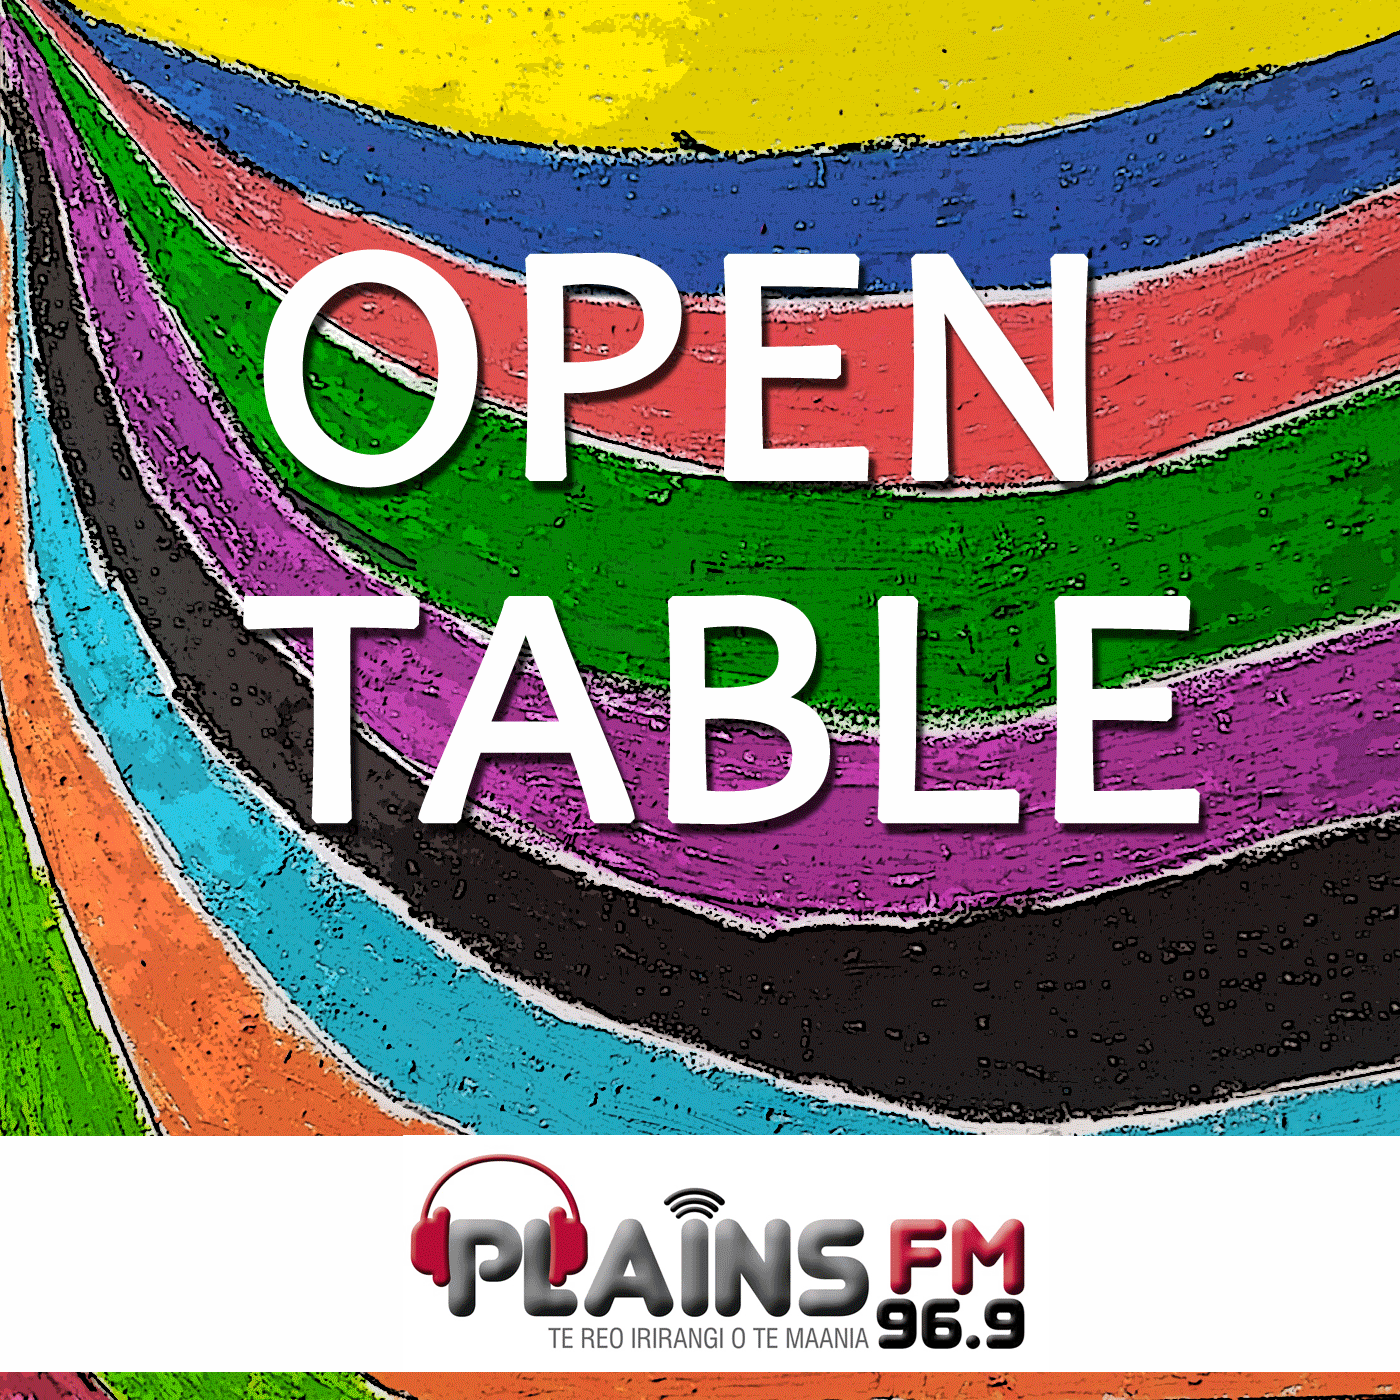 Open Table - UNITY through the eyes of Flower Girl